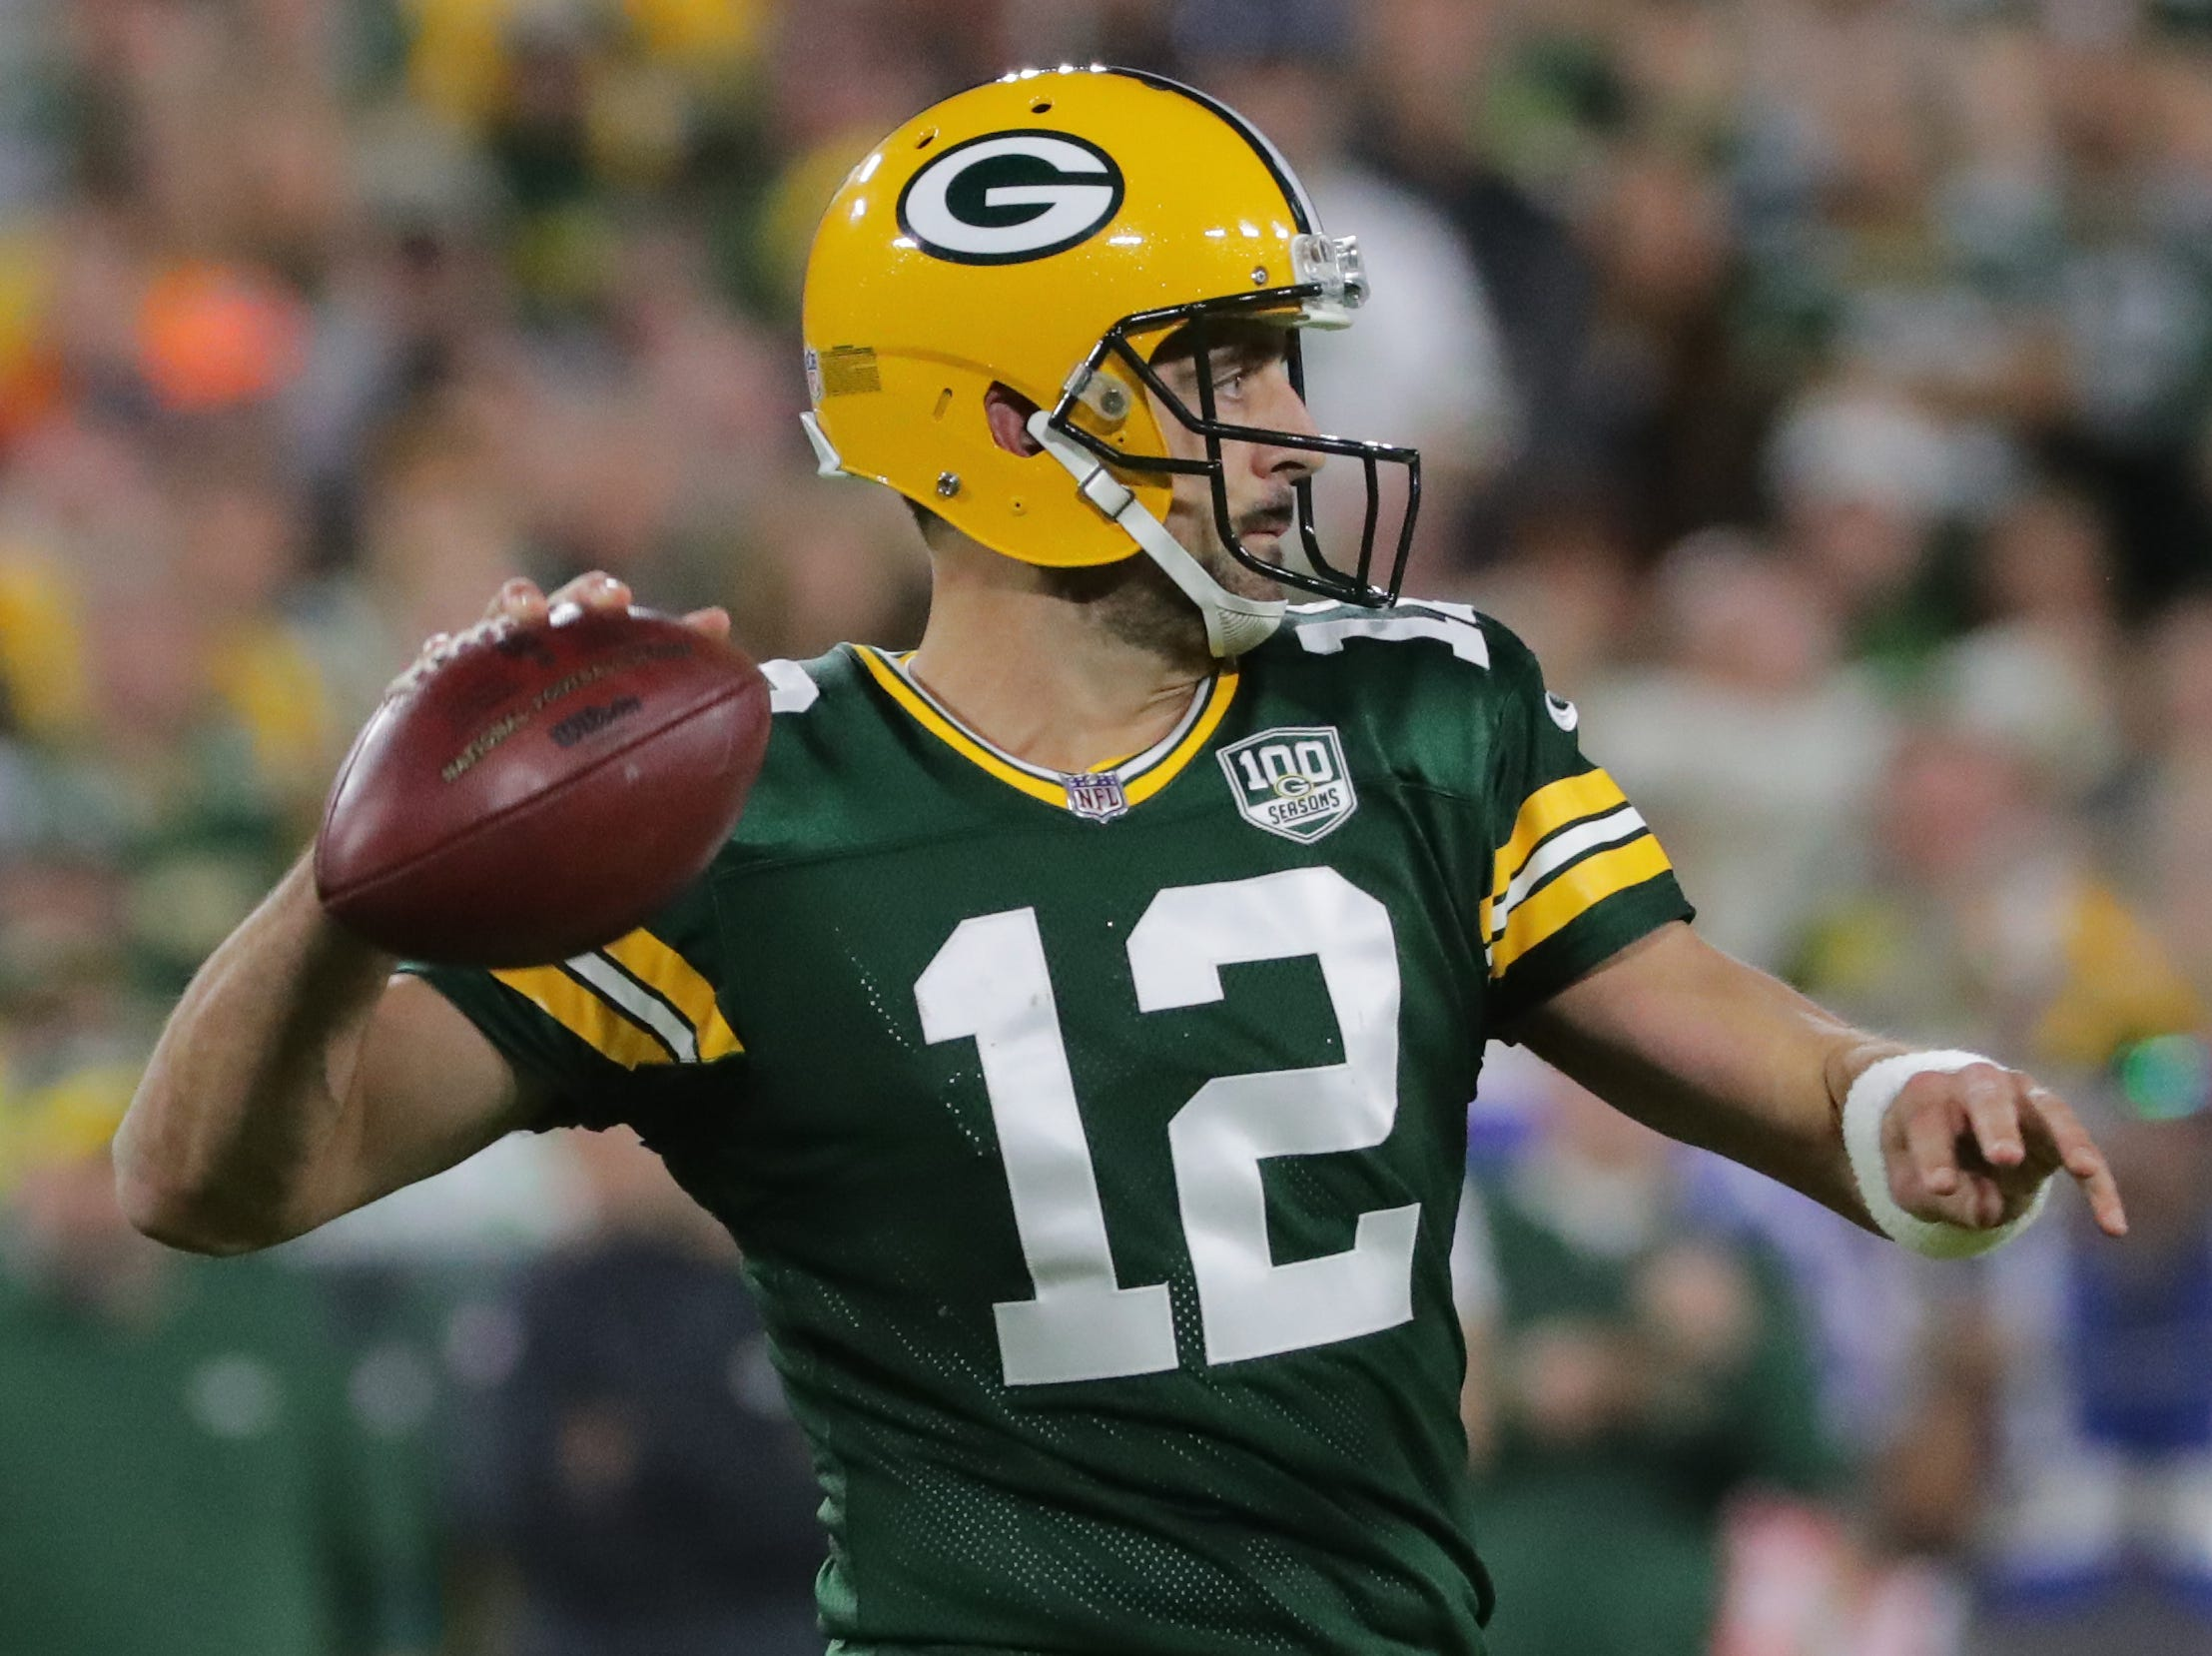 Green Bay Packers quarterback Aaron Rodgers (12) rifles a pass after re-eentering the game for the first series in the third quarter of their game against the Chicago Bears Sunday, September 9, 2018 at Lambeau Field in Green Bay, Wis. Rodgers had been carted off the field during the second quarter after hit by Chicago Bears defensive end Roy Robertson-Harris.